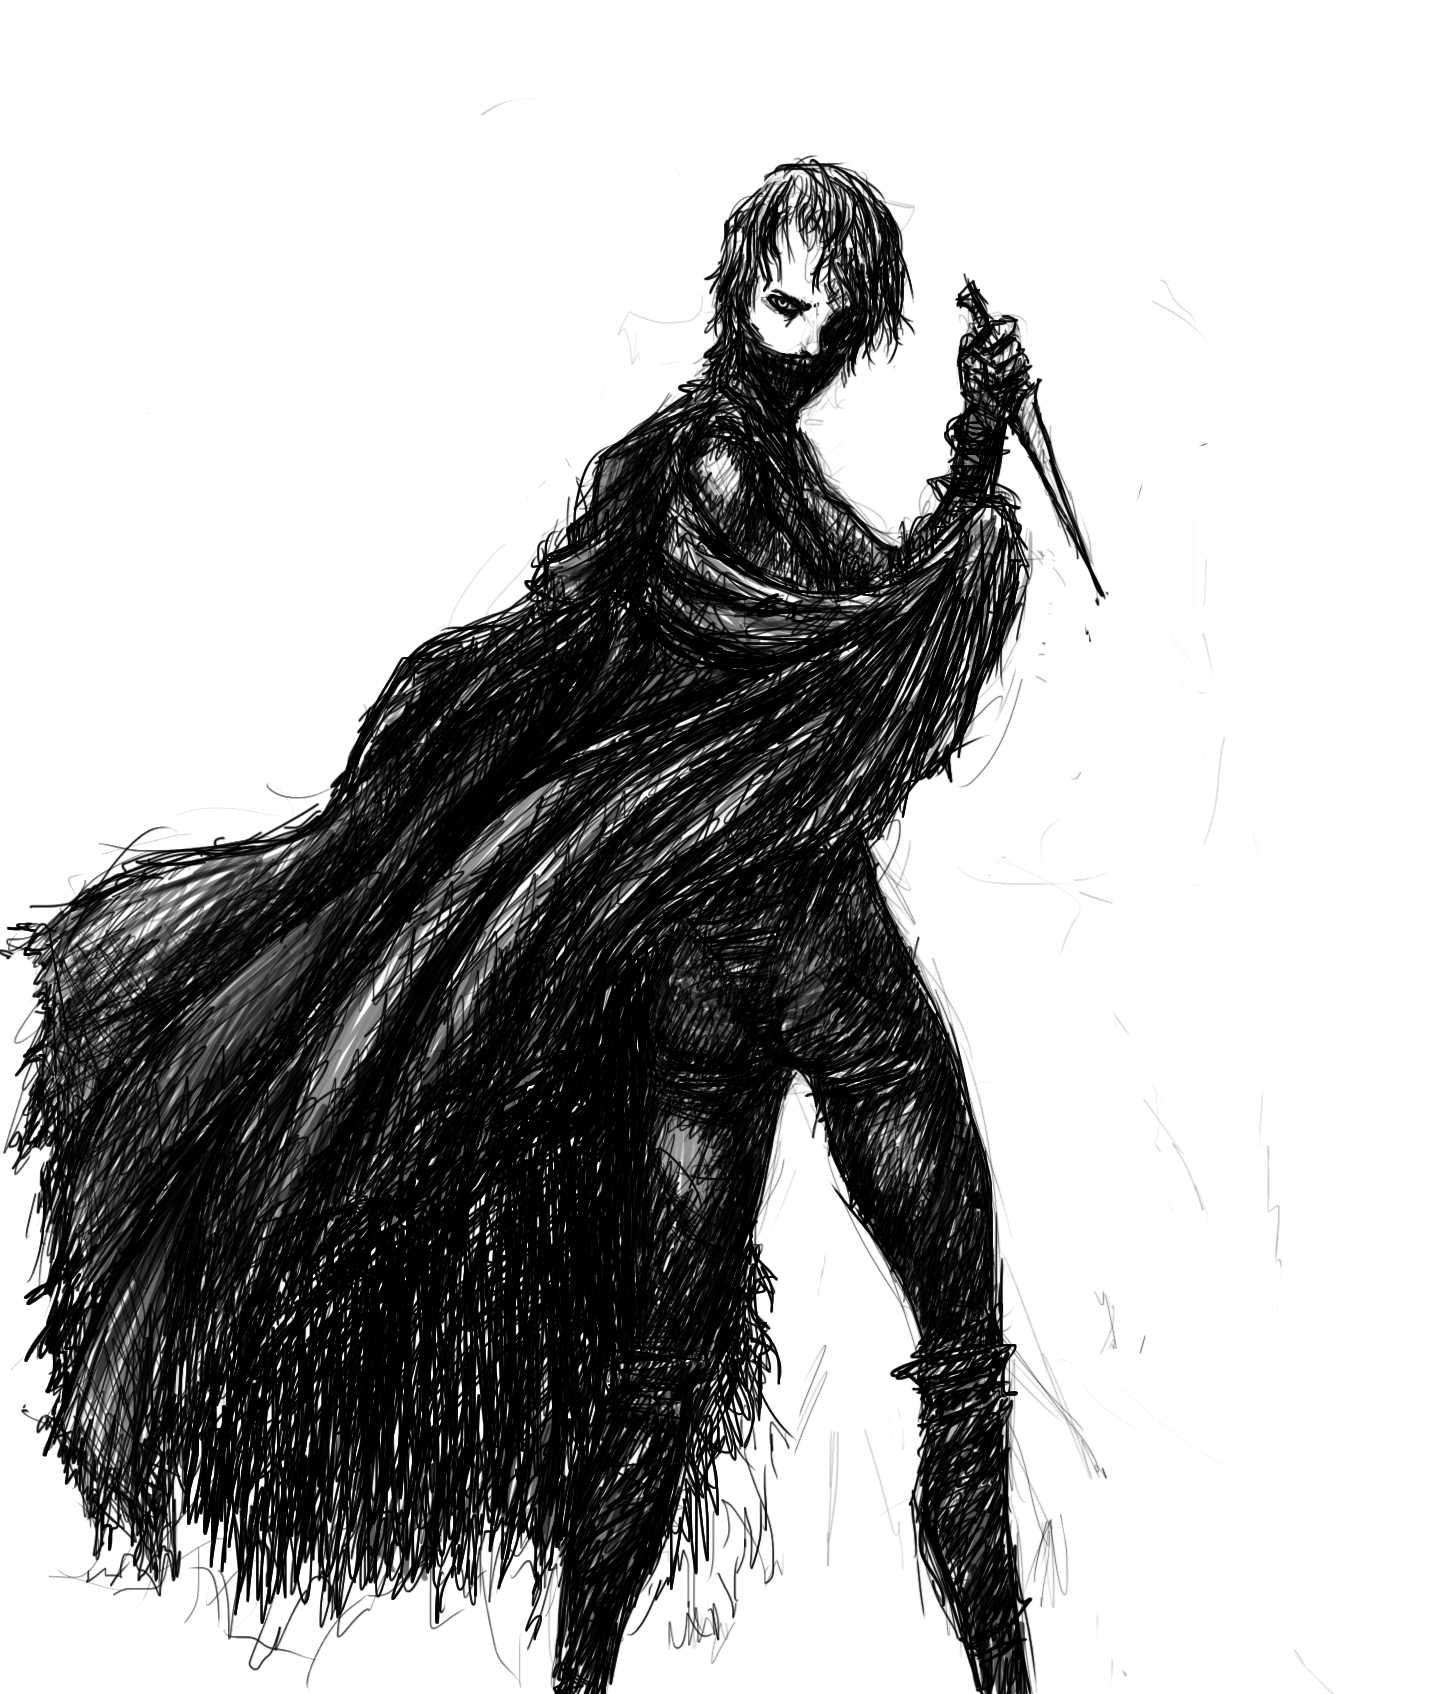 Cloaked Assailant